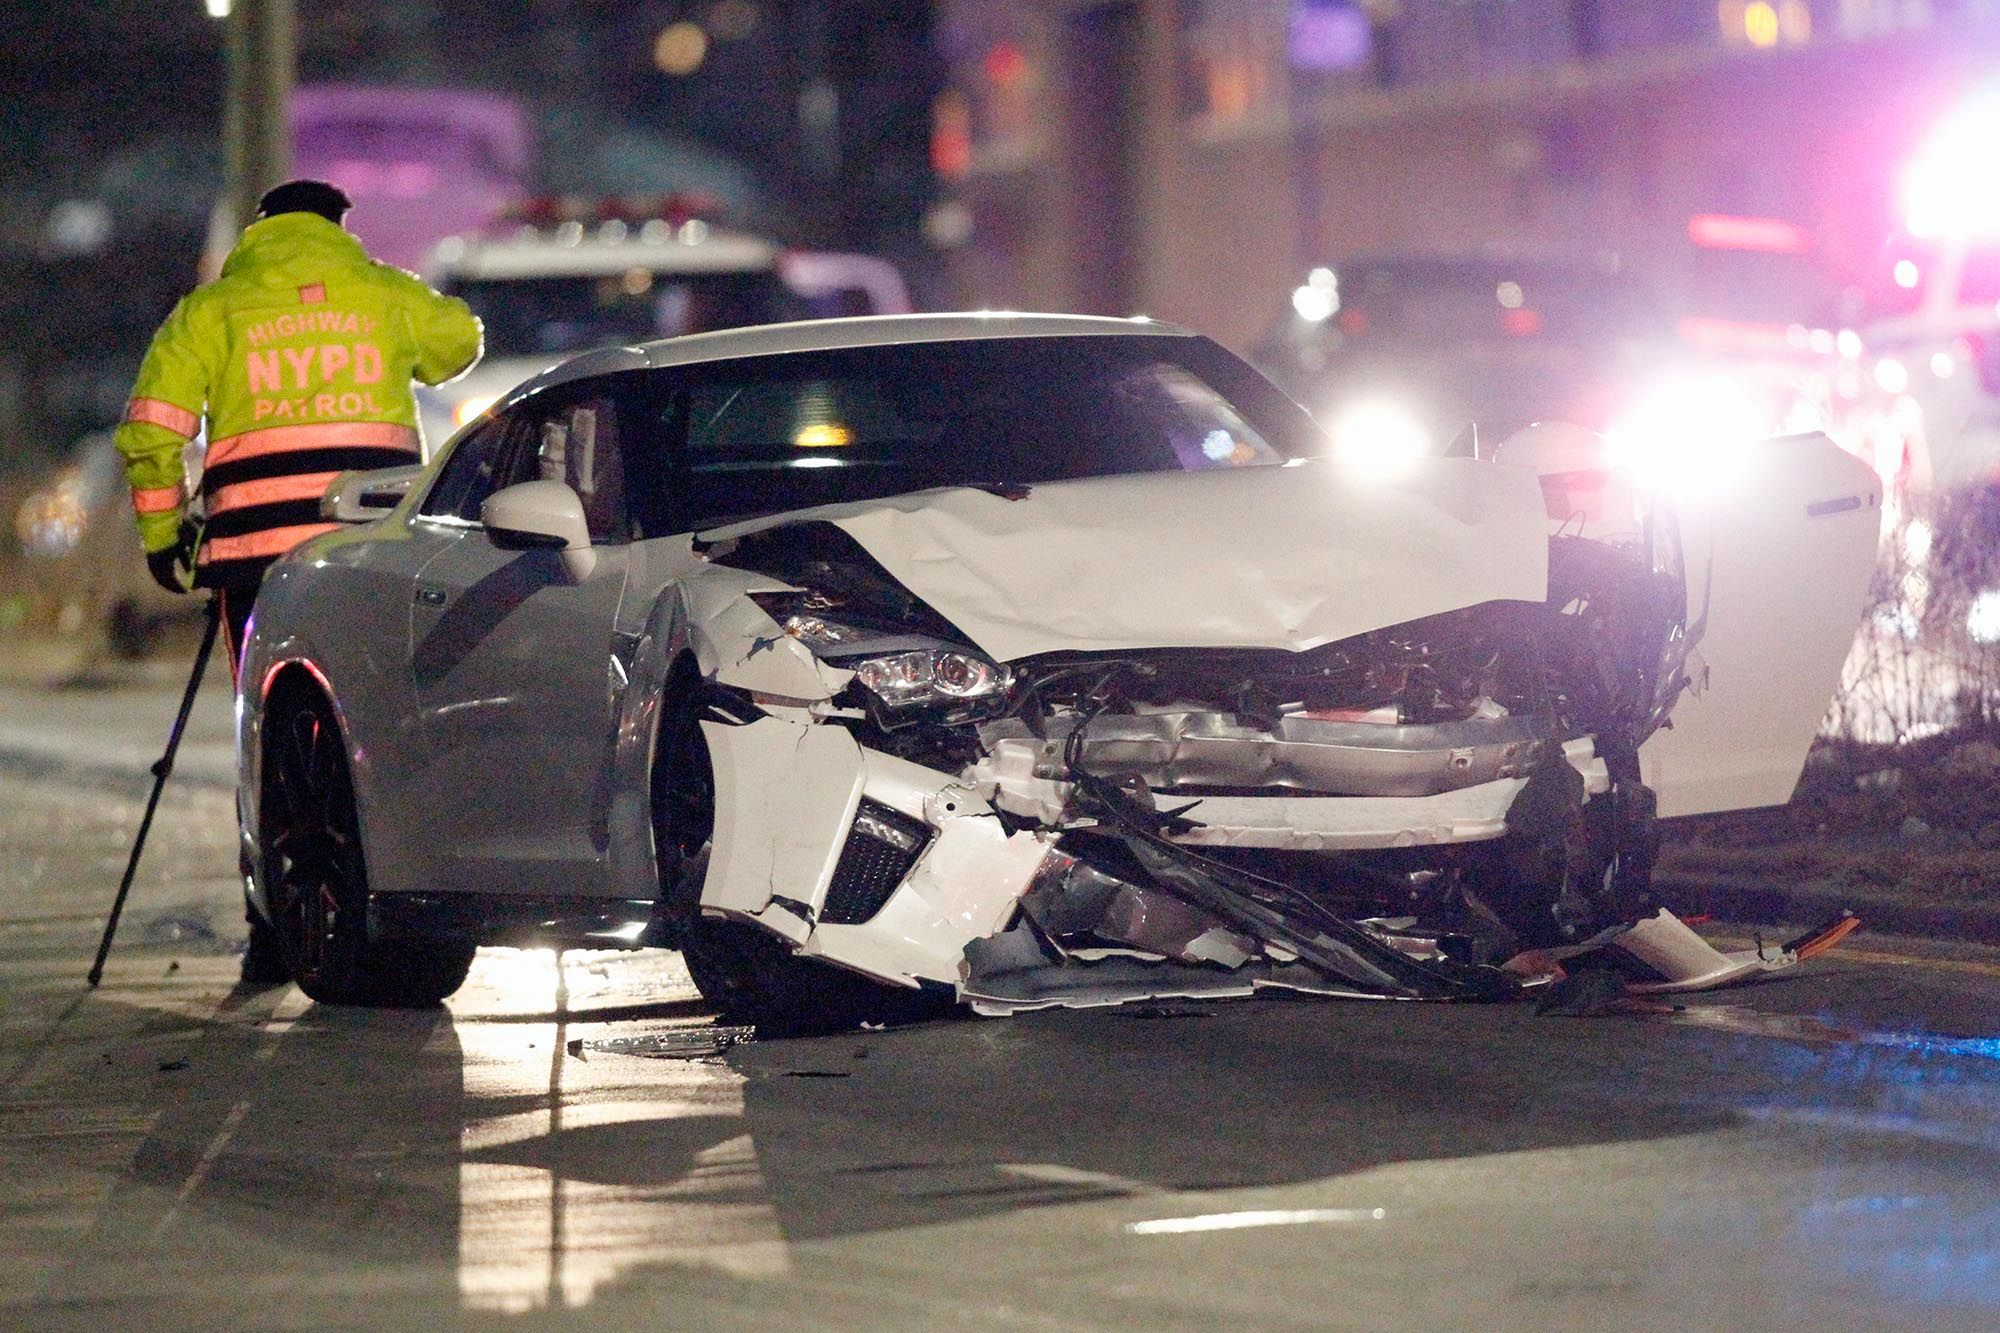 How Much Does It Cost to Be Hospitalized After a Car Accident?